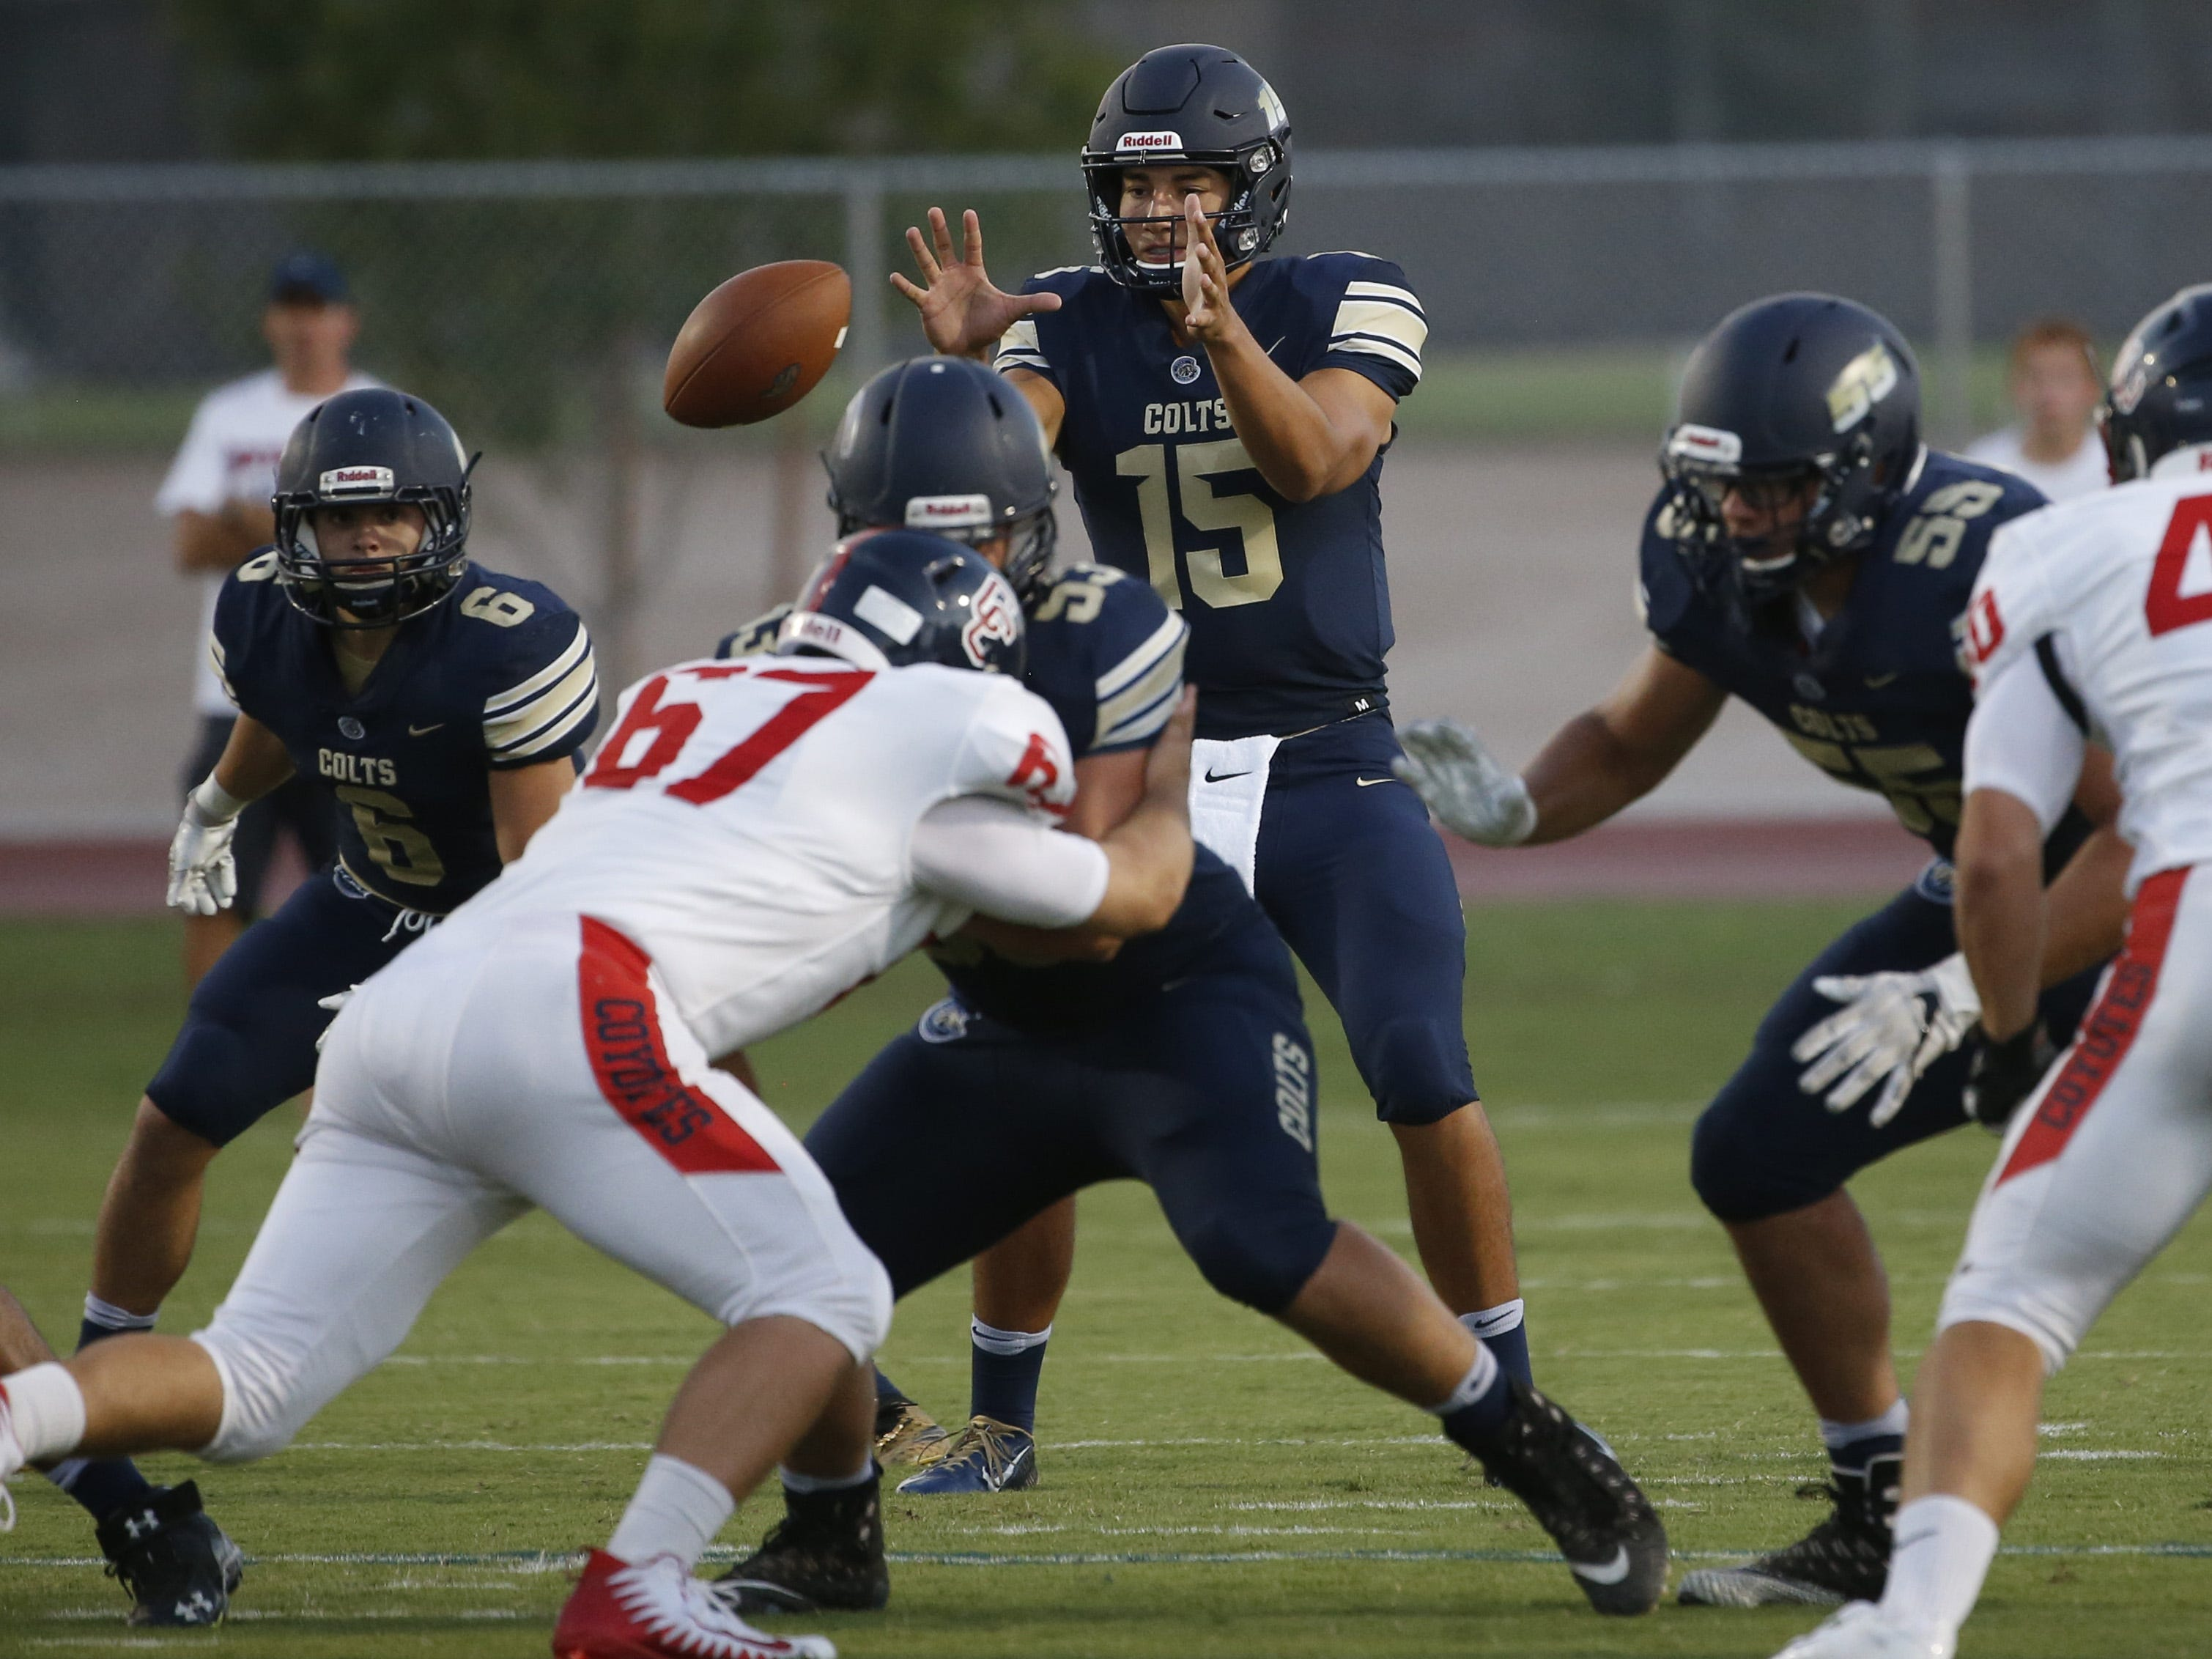 Casteel's Gunner Cruz (15) takes the snap against Centennial during the first half at Casteel High School in Queen Creek, Ariz. on Aug. 17, 2018.